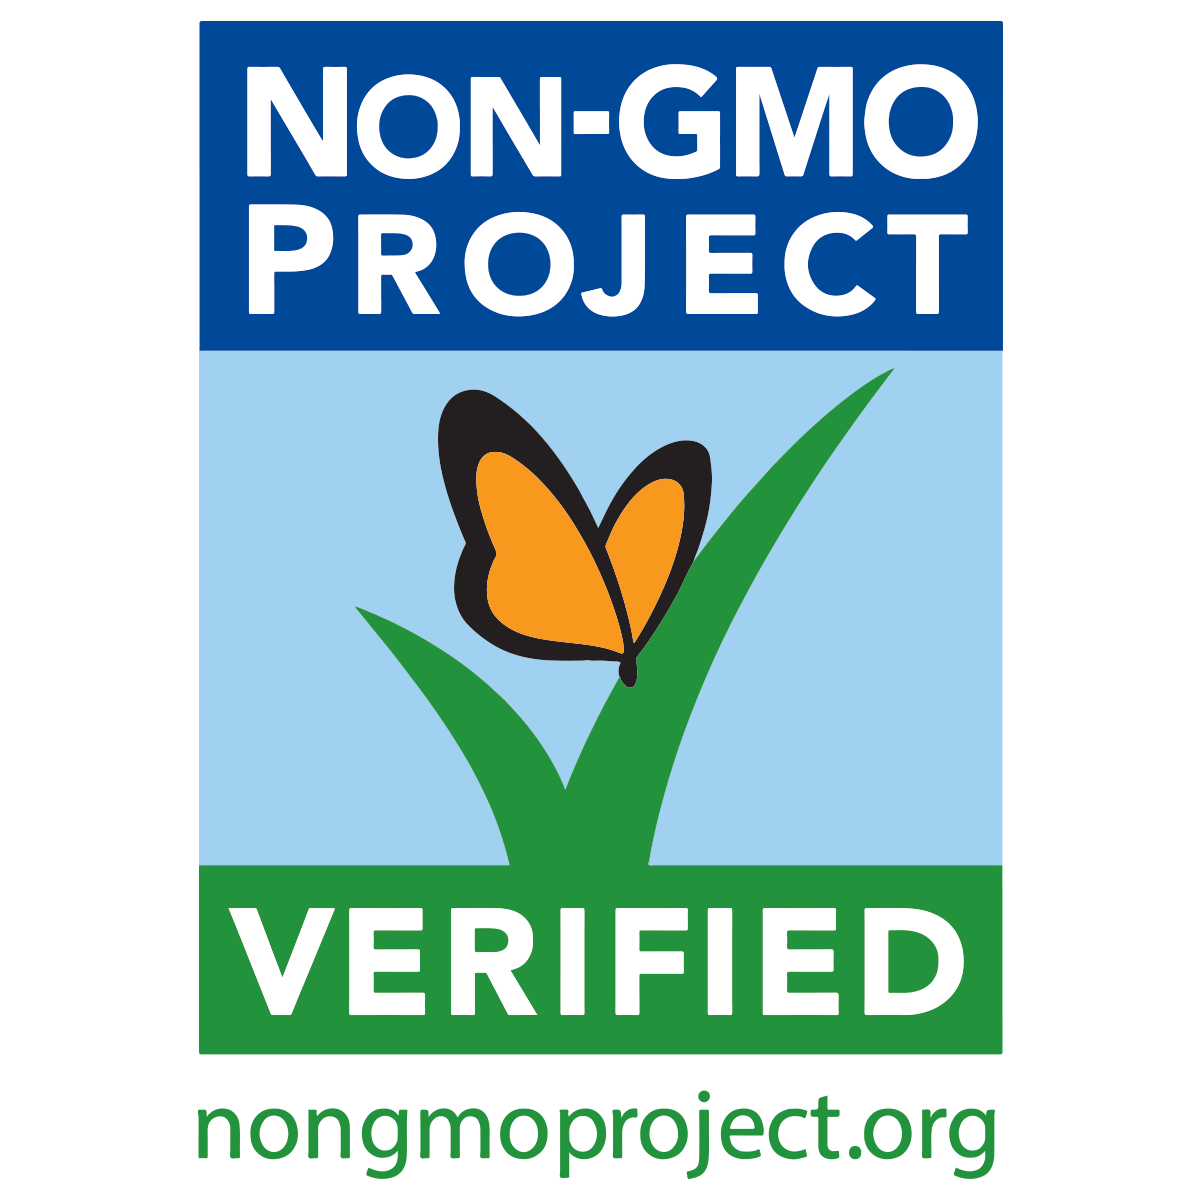 certified-non-GMO-project-verified-logo.png